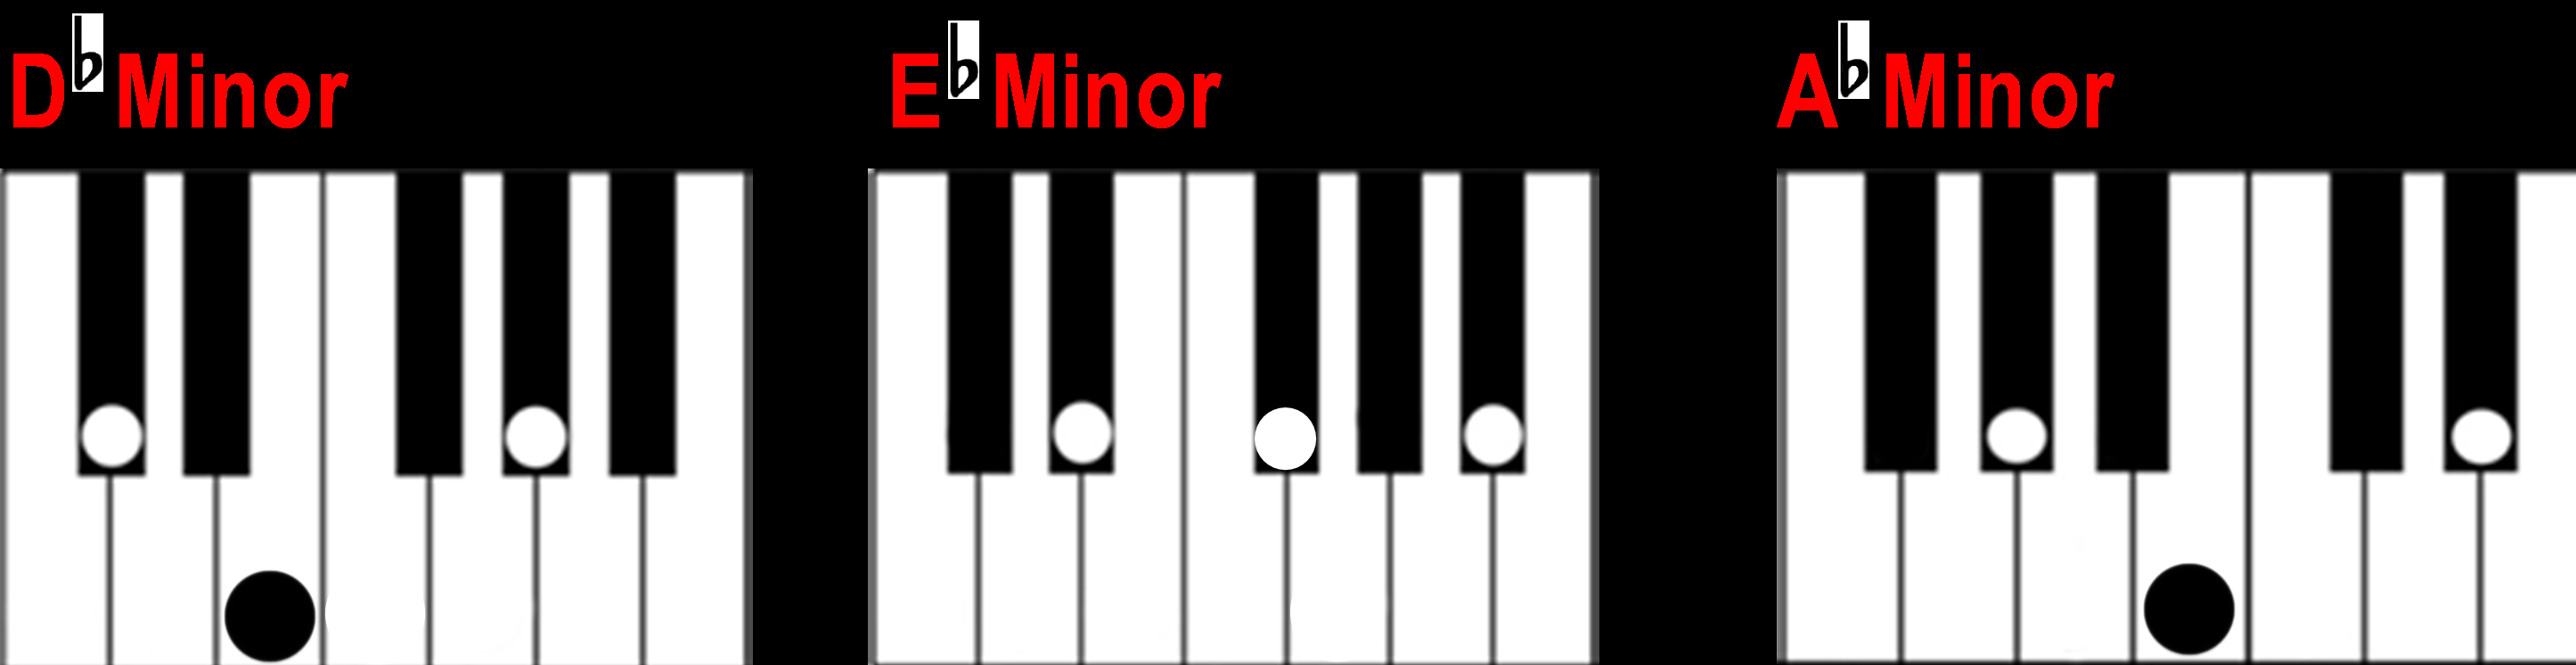 D Minor Chord Finding A Minor Chord On The Piano